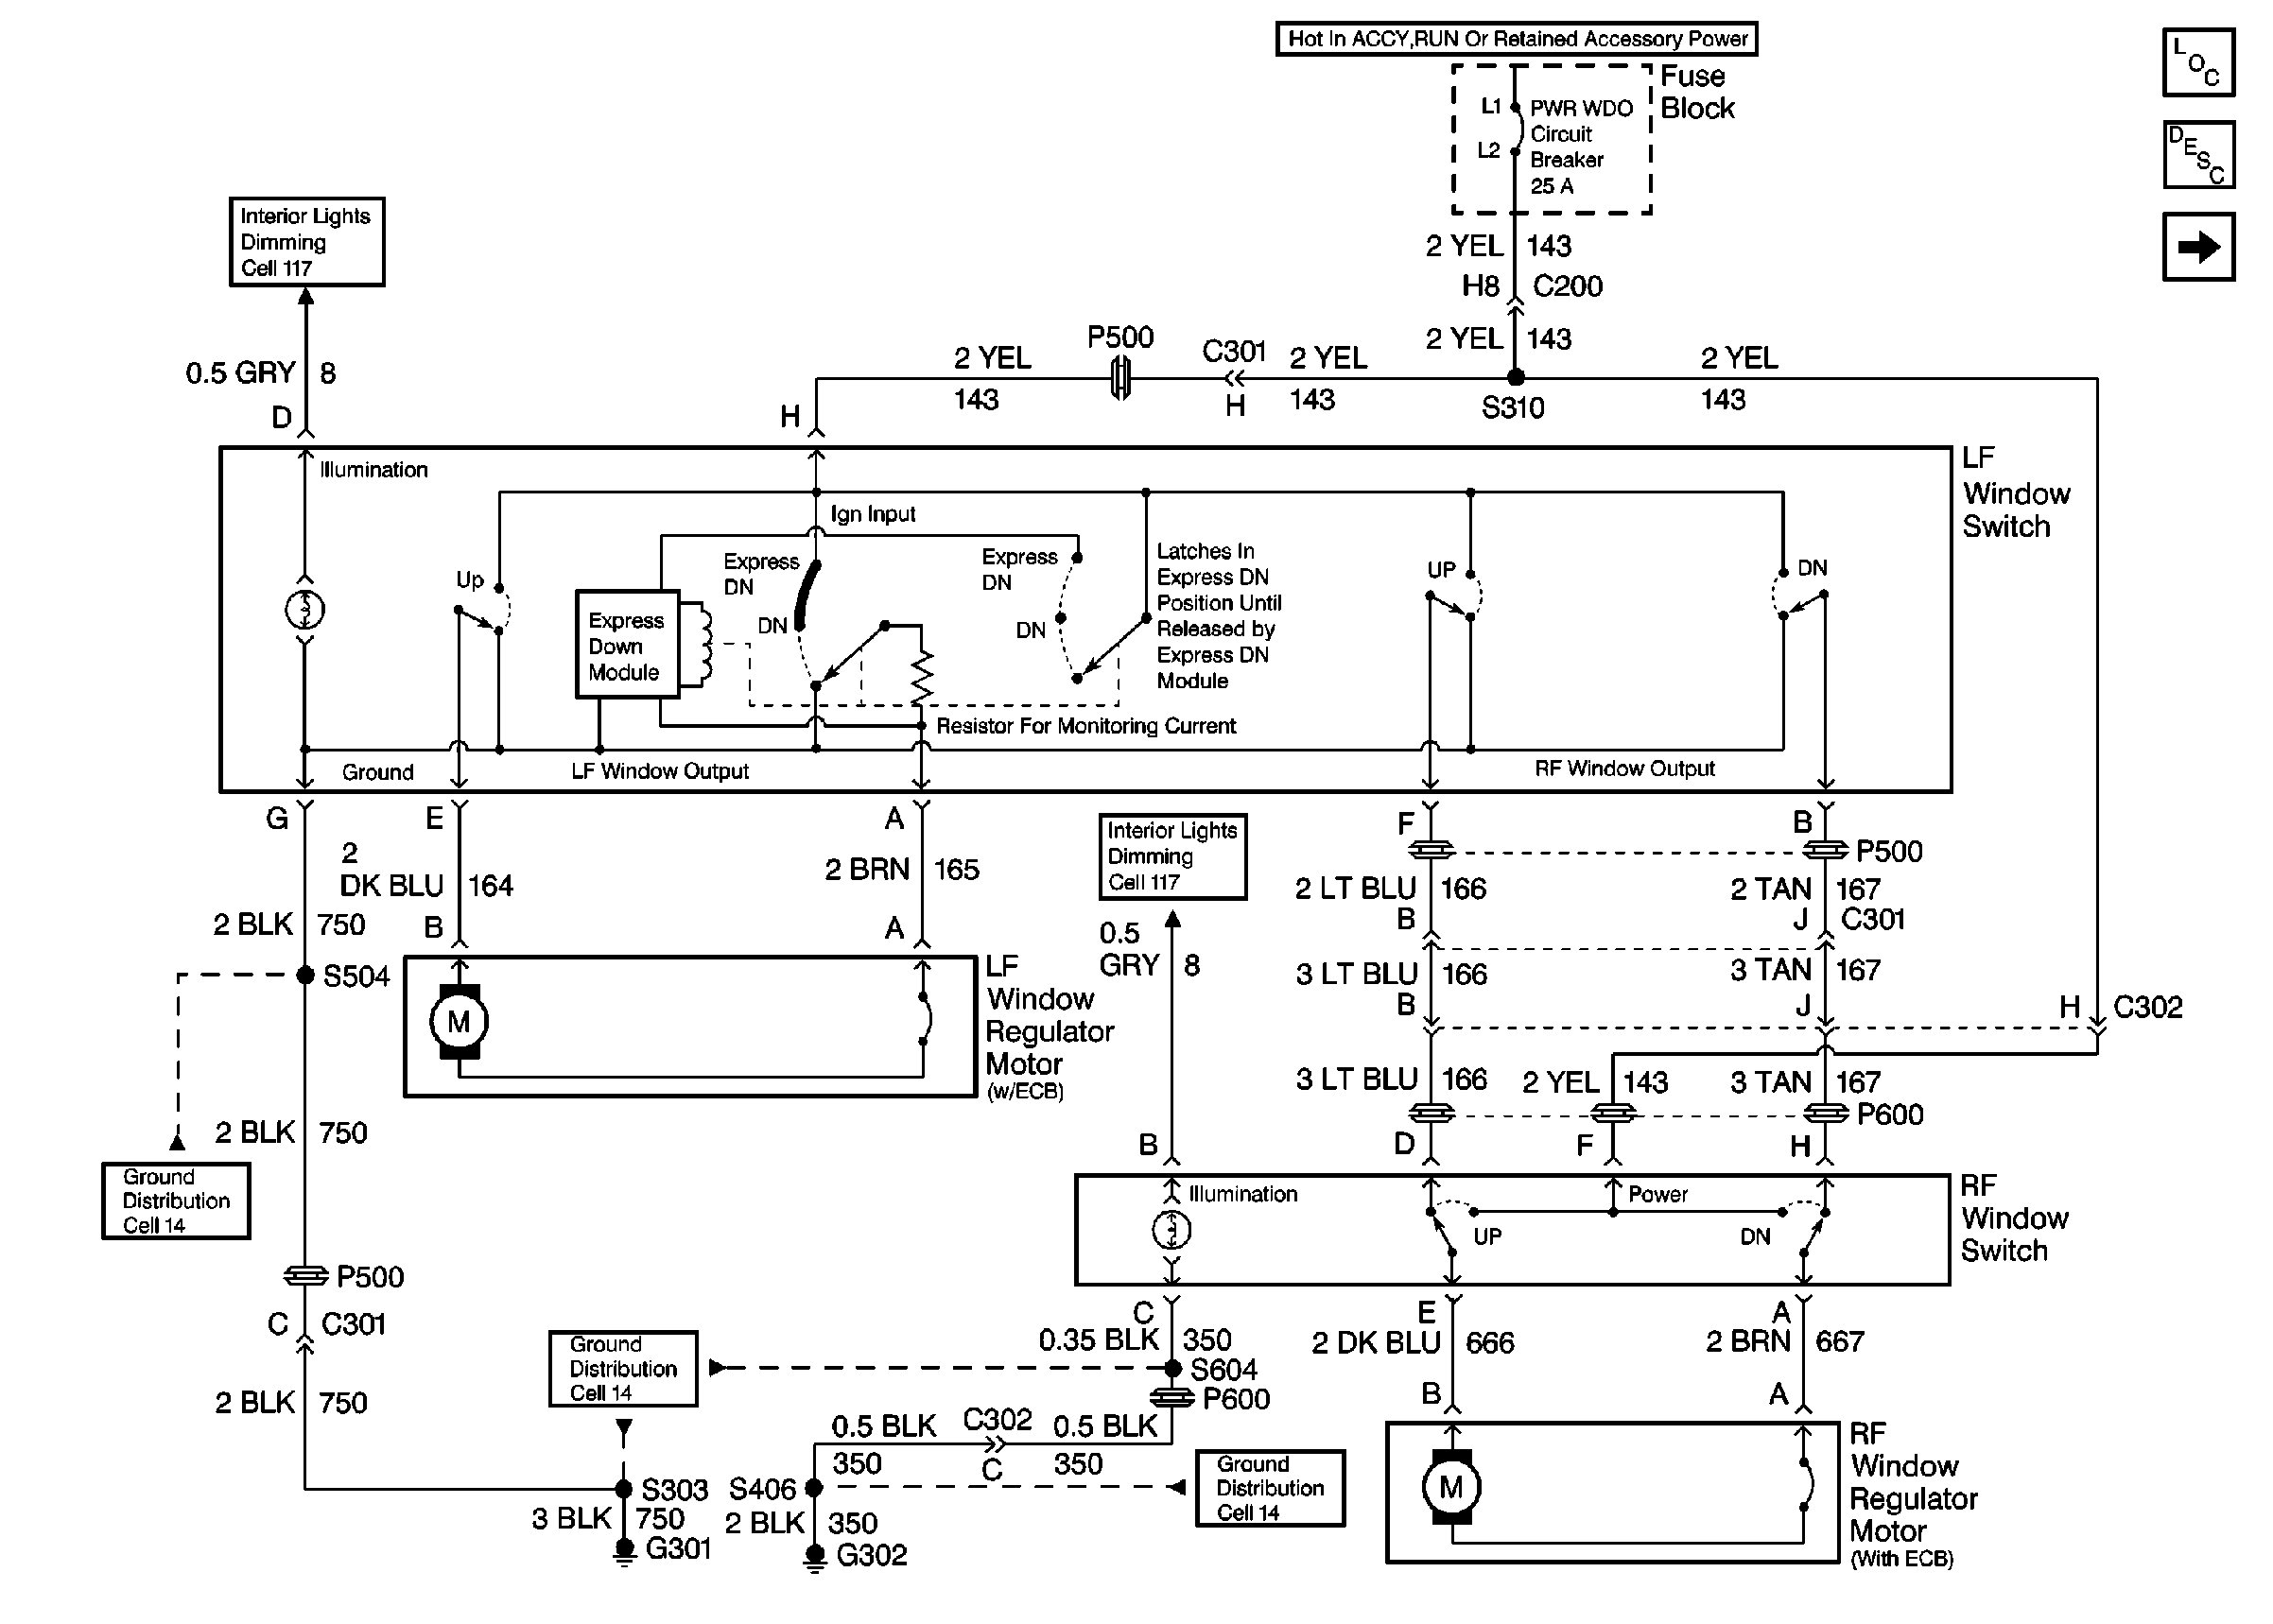 2002 pontiac sunfire headlight wiring diagram images pontiac engine diagram on pontiac grand am wiring 2000 sunfire